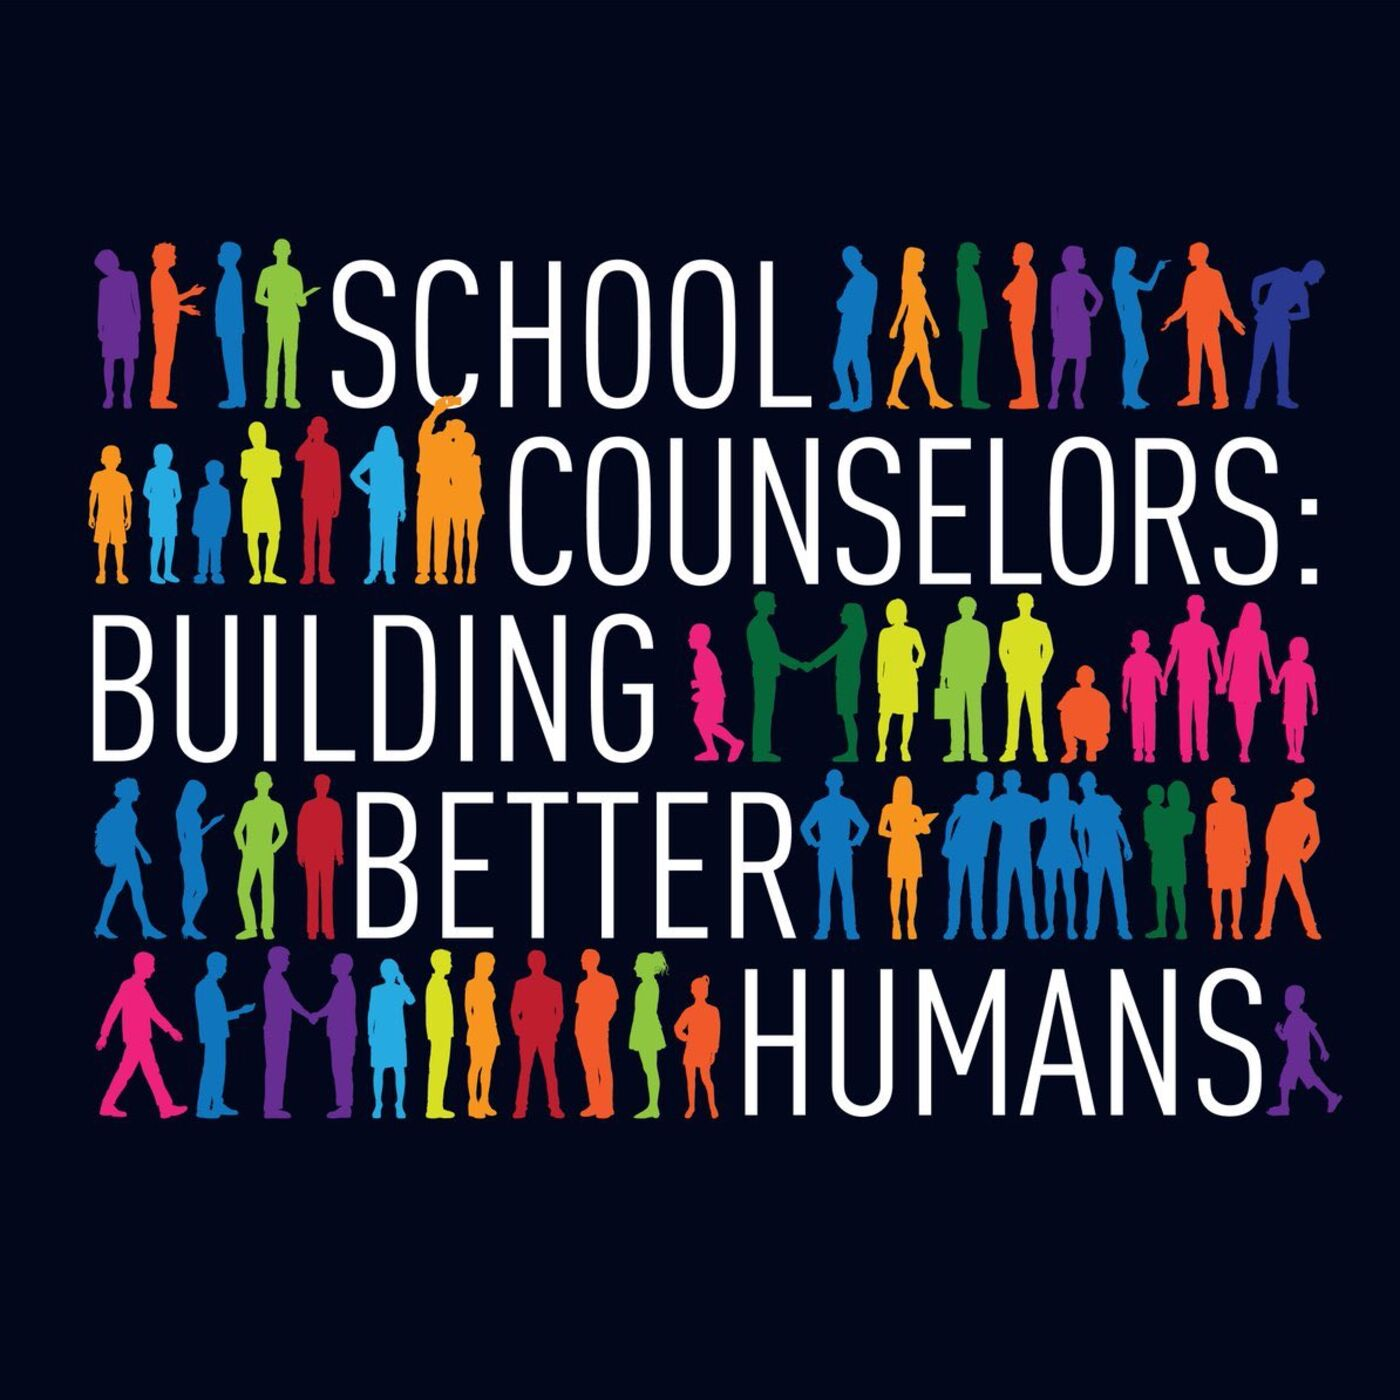 School Counselors: Building Better Humans- A Talk with the 2020 ASCA School Counselor of the Year